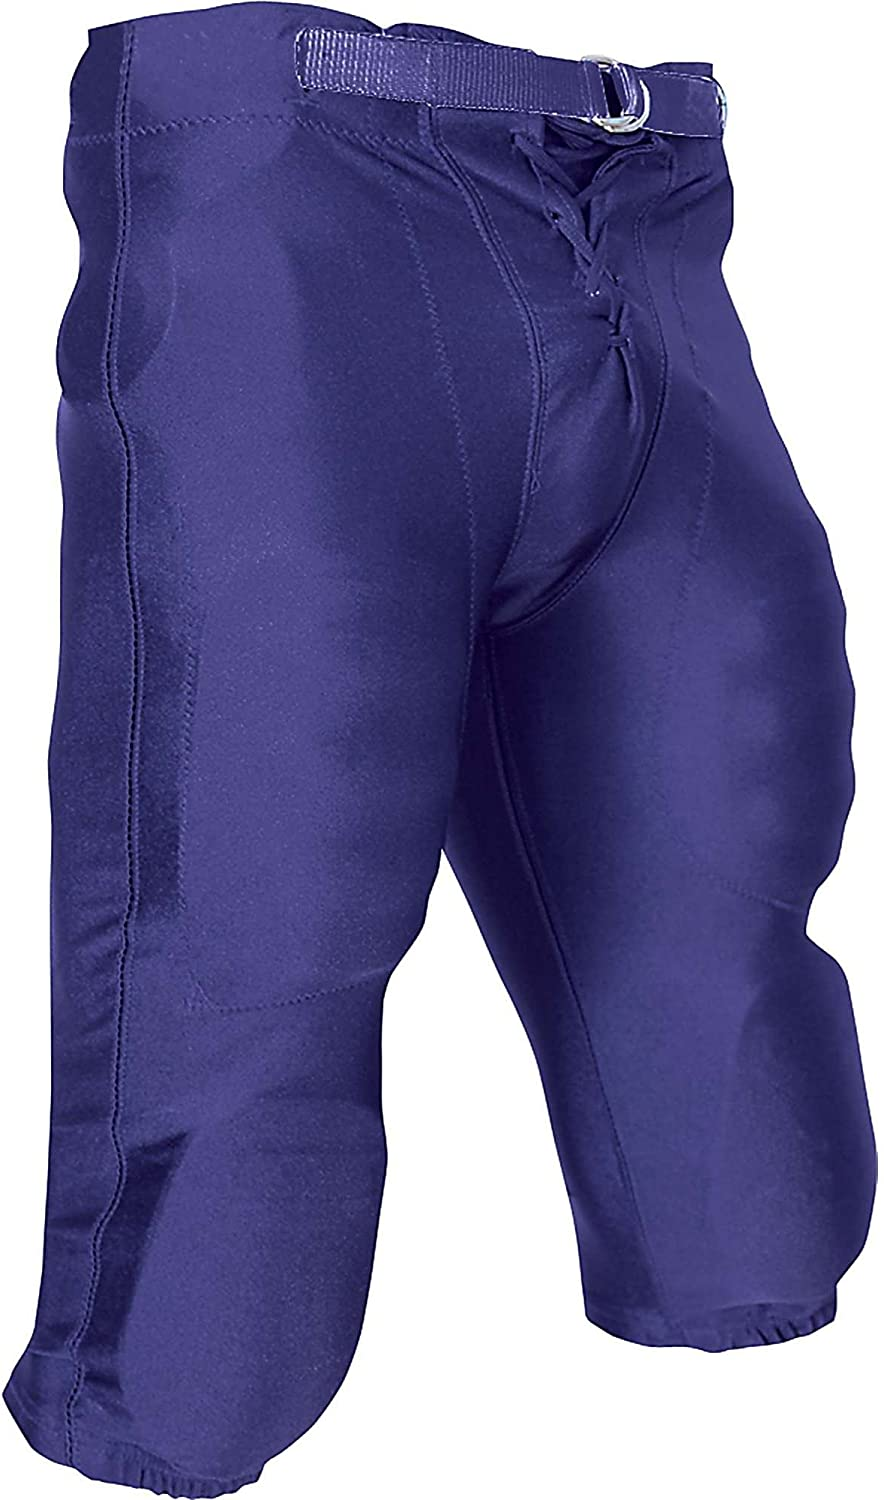 CHAMPRO Youth Stretch Dazzle Football Pant with Snaps